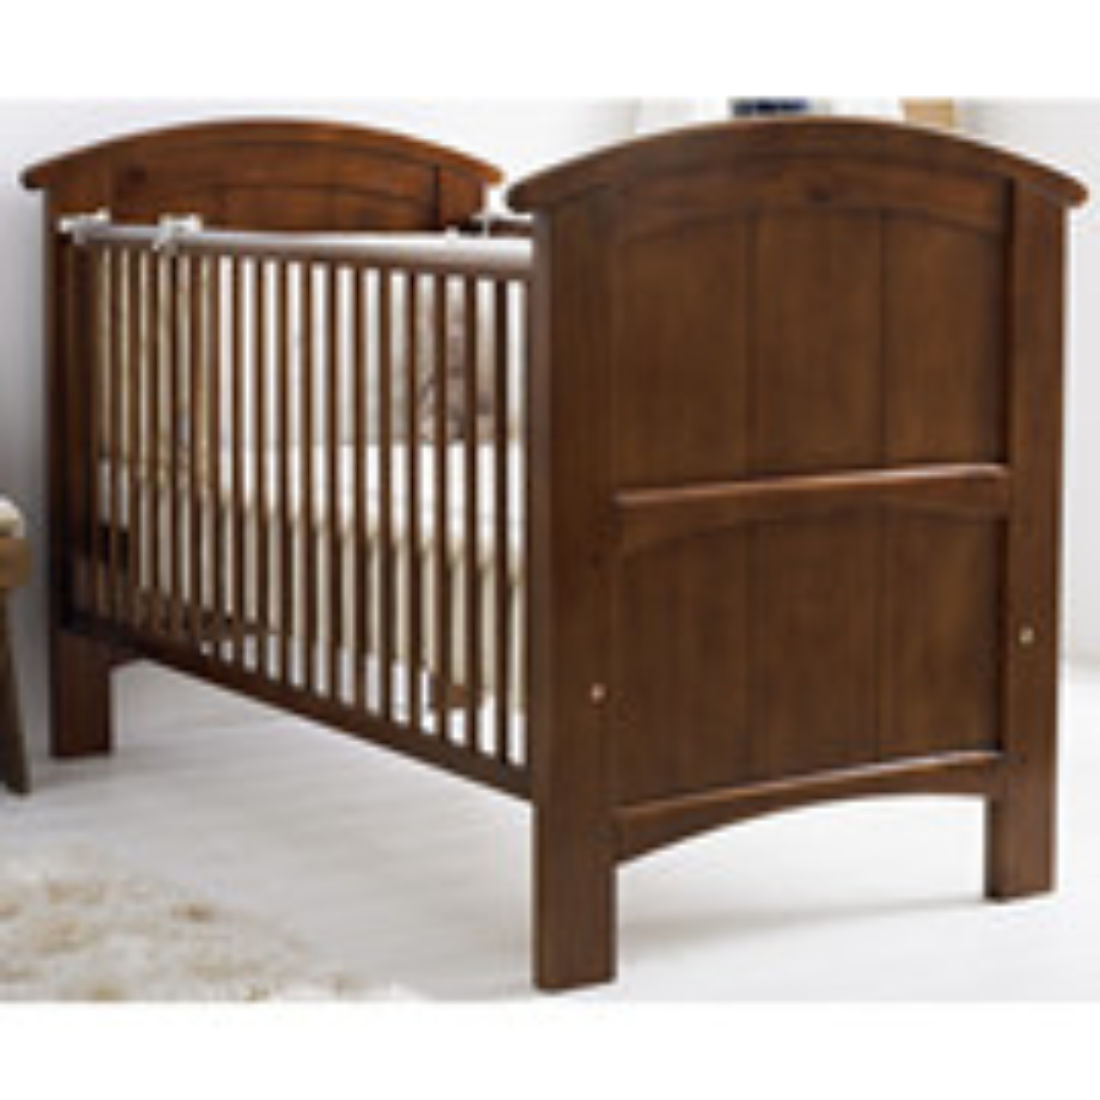 cosatto hogarth cot bed instructions